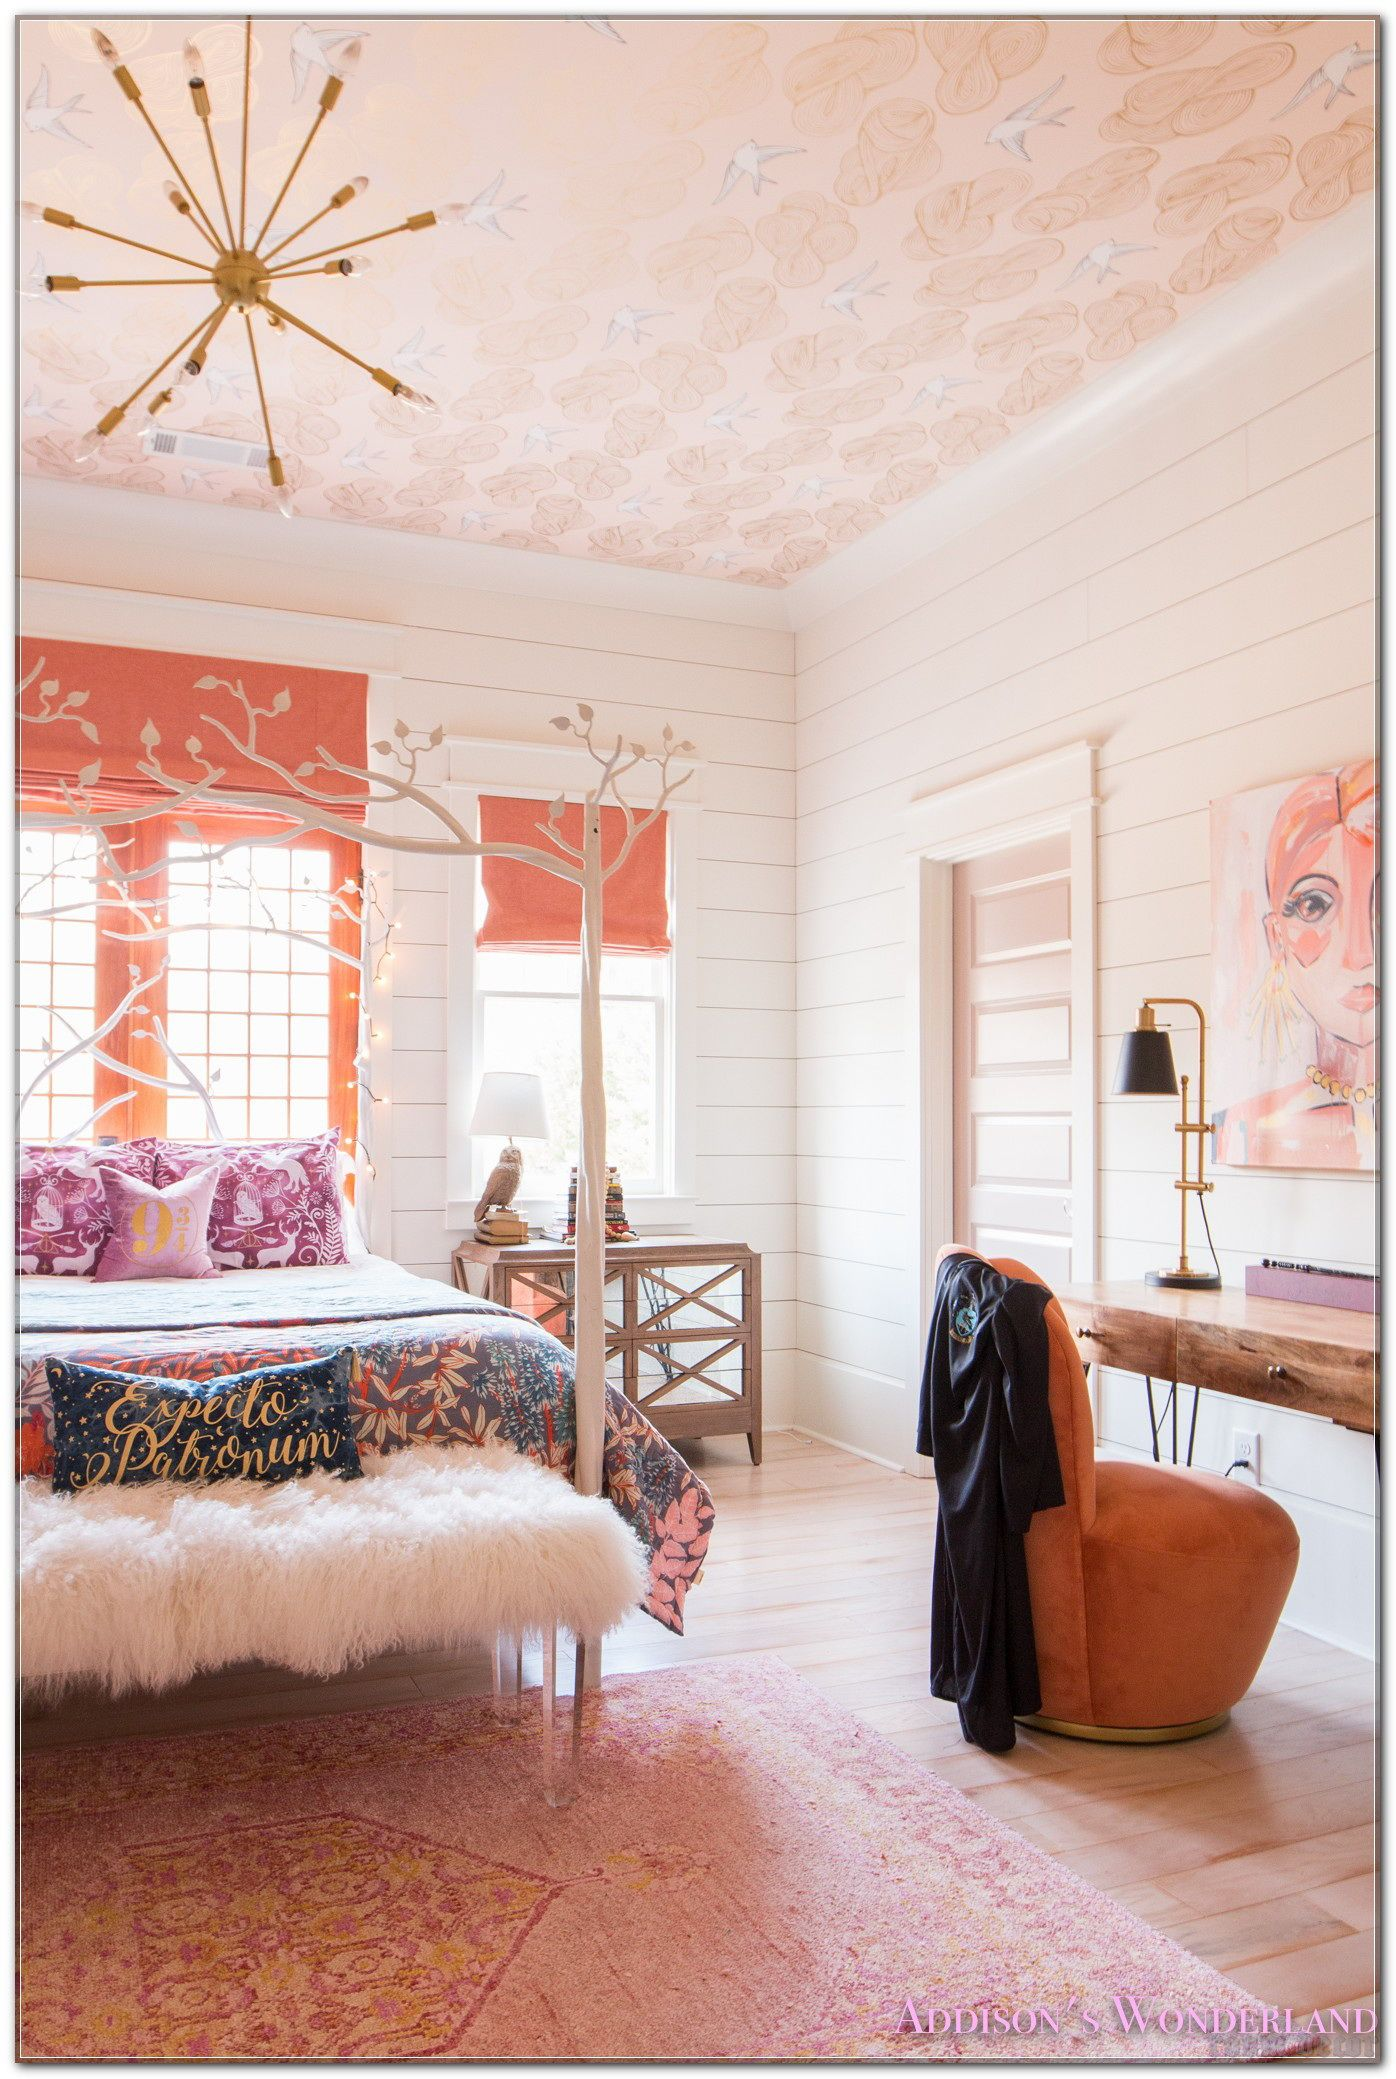 Room Decor Tip: Be Consistent